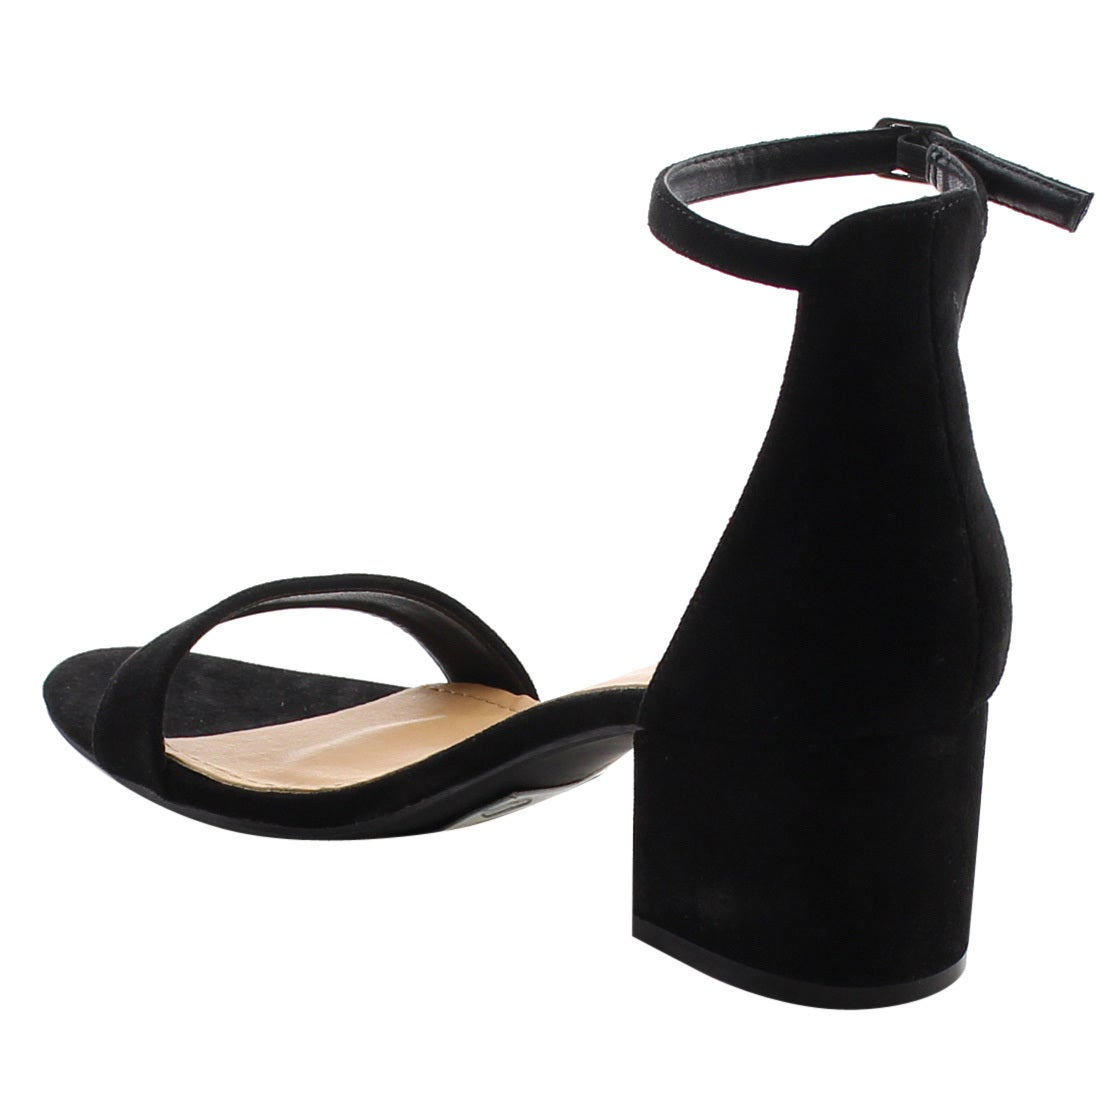 ab954e6cc07 Shop Beston FH76 Women s Single Band Ankle Strap Chunky Heel Dress Sandals  - Free Shipping On Orders Over  45 - Overstock - 15406810